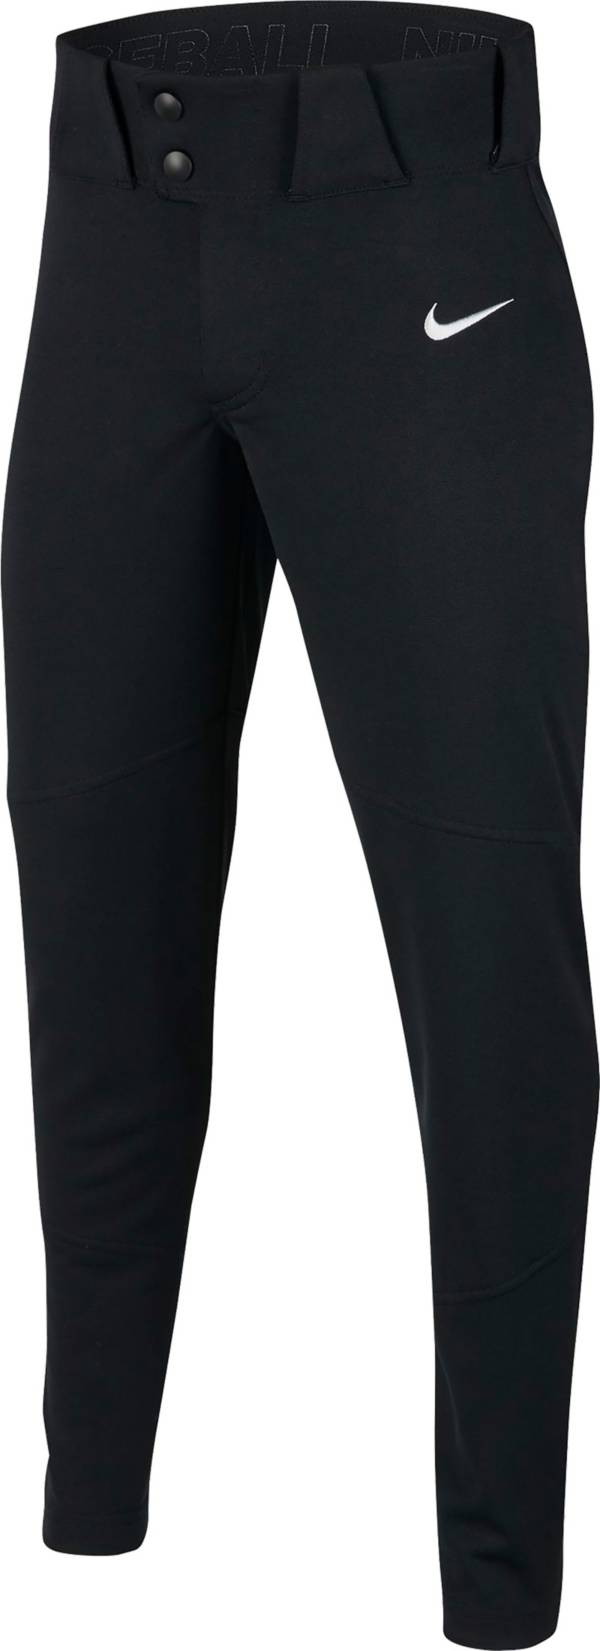 Nike Boys' Vapor Select Baseball Pants product image